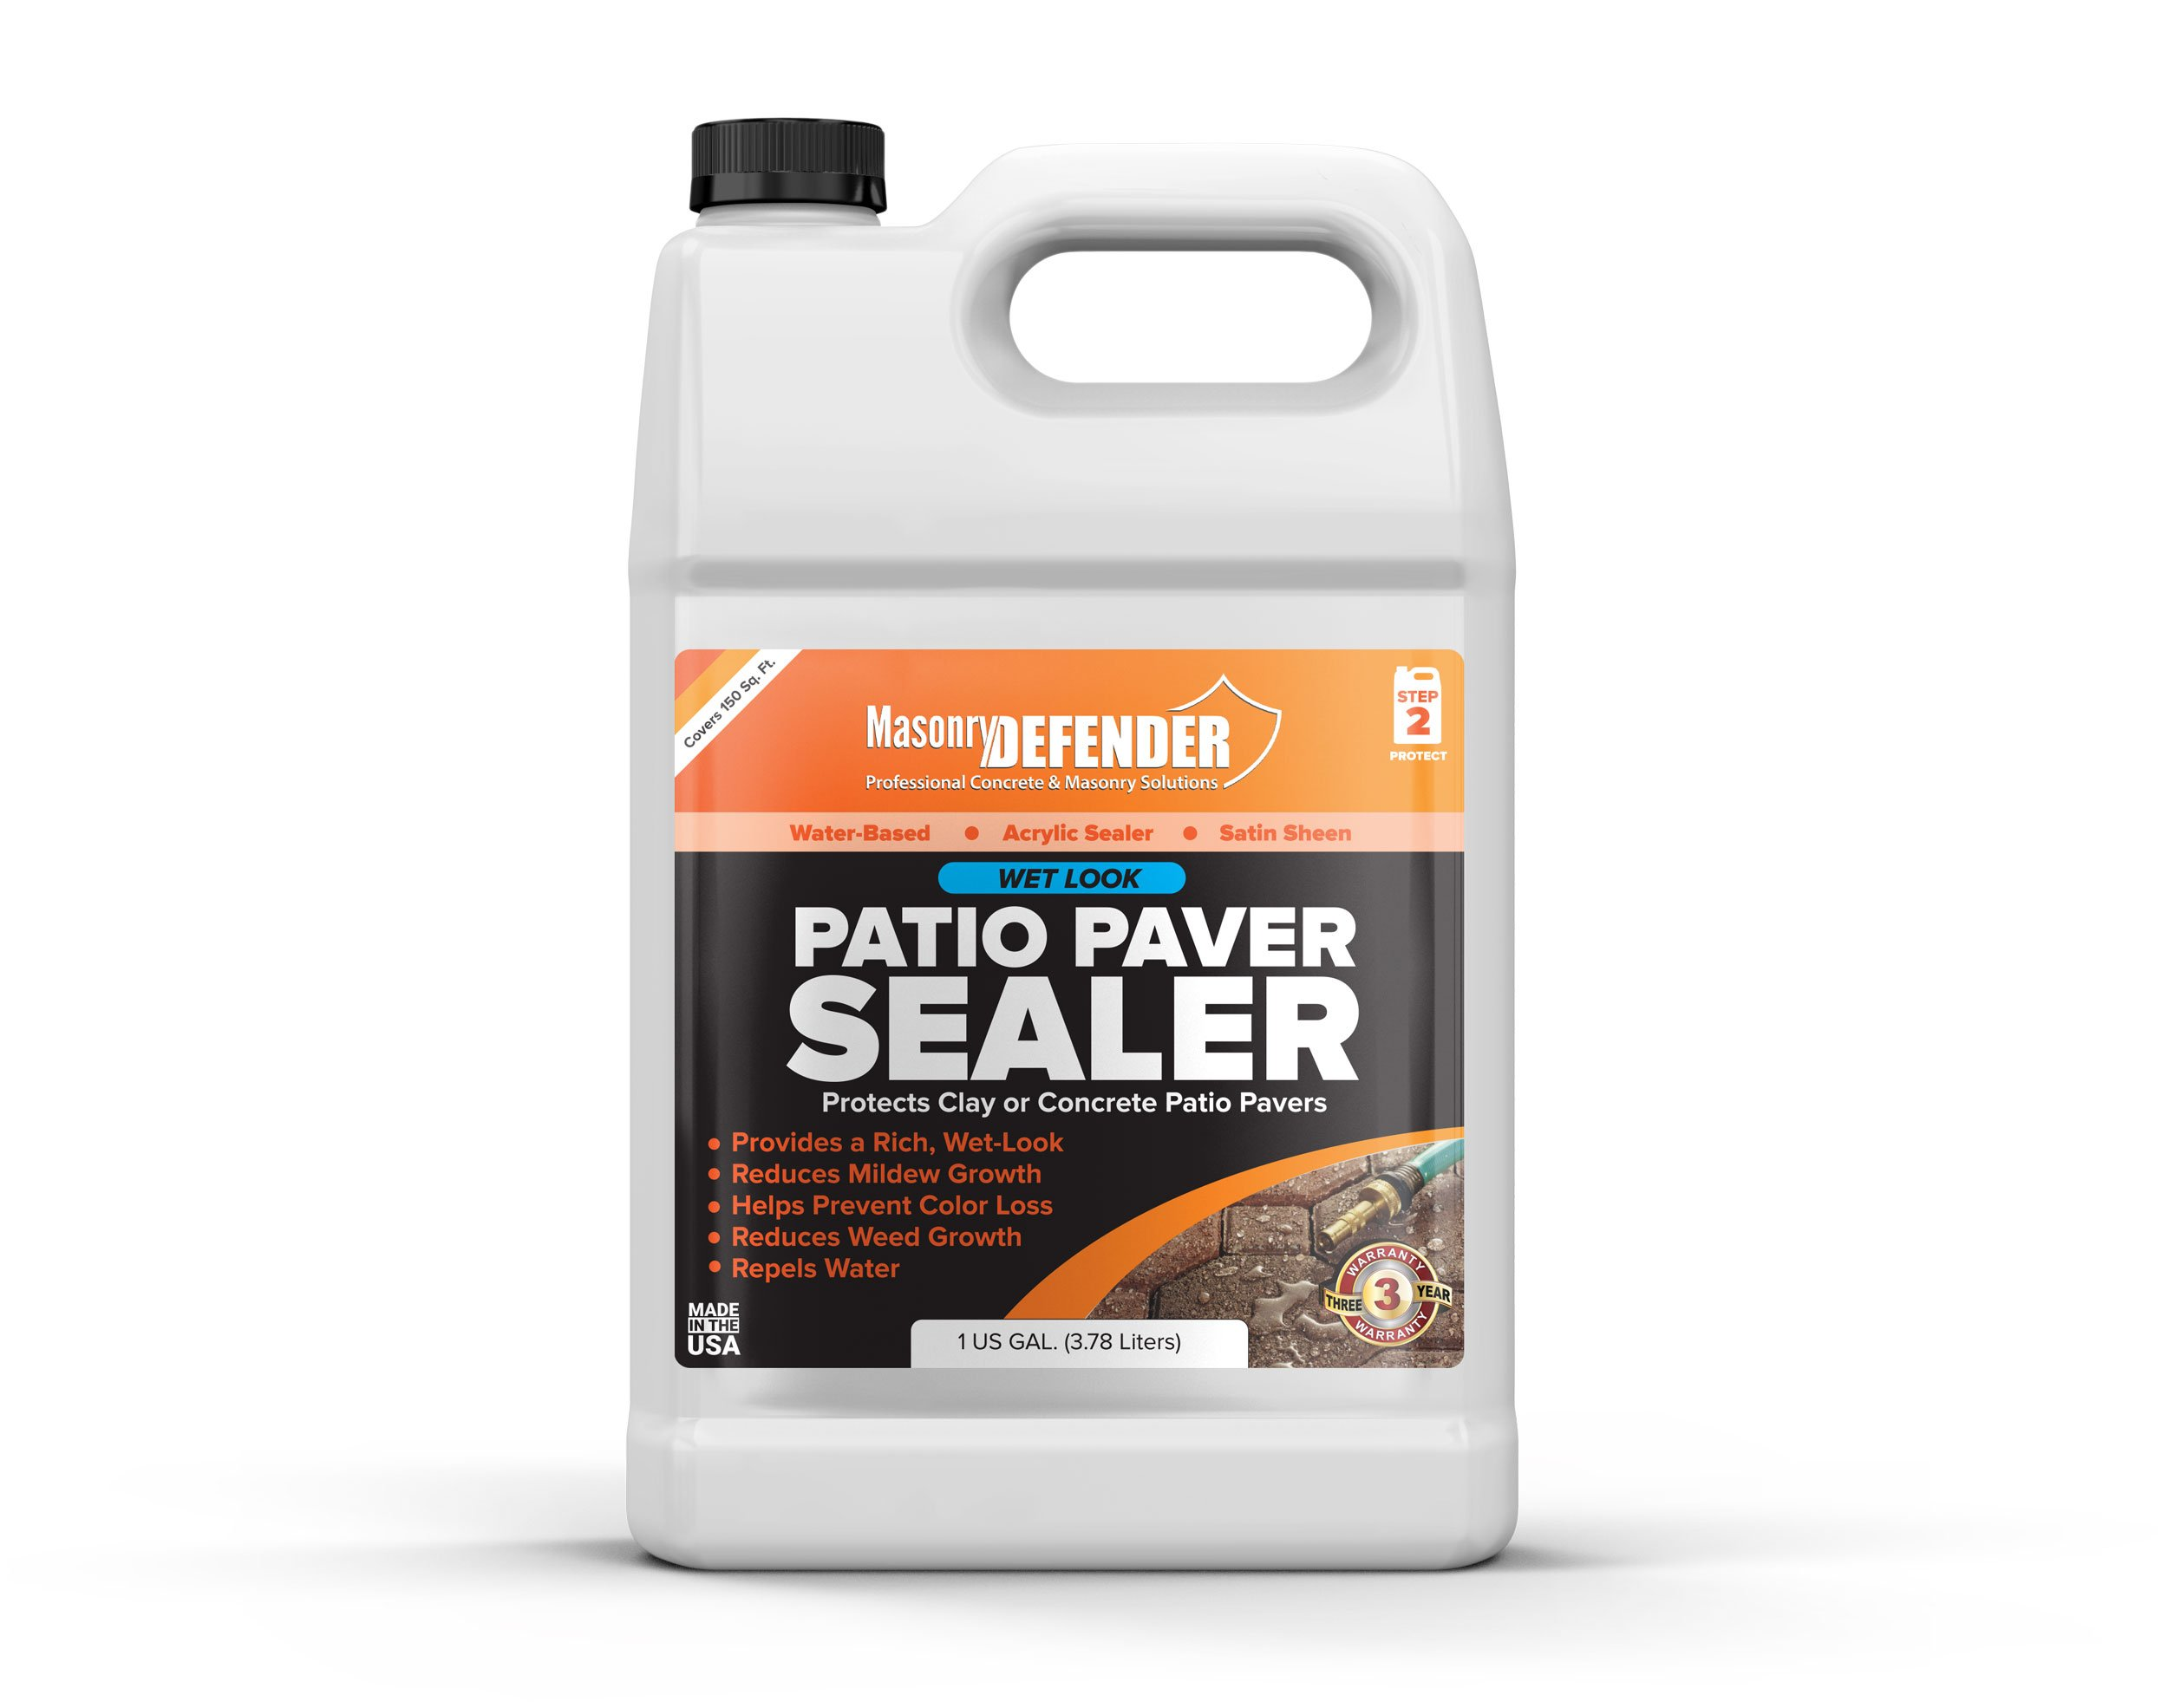 Low Gloss Patio Paver Sealer, 1 gal - Clear Water-Based Sealant for Natural Stone Surfaces